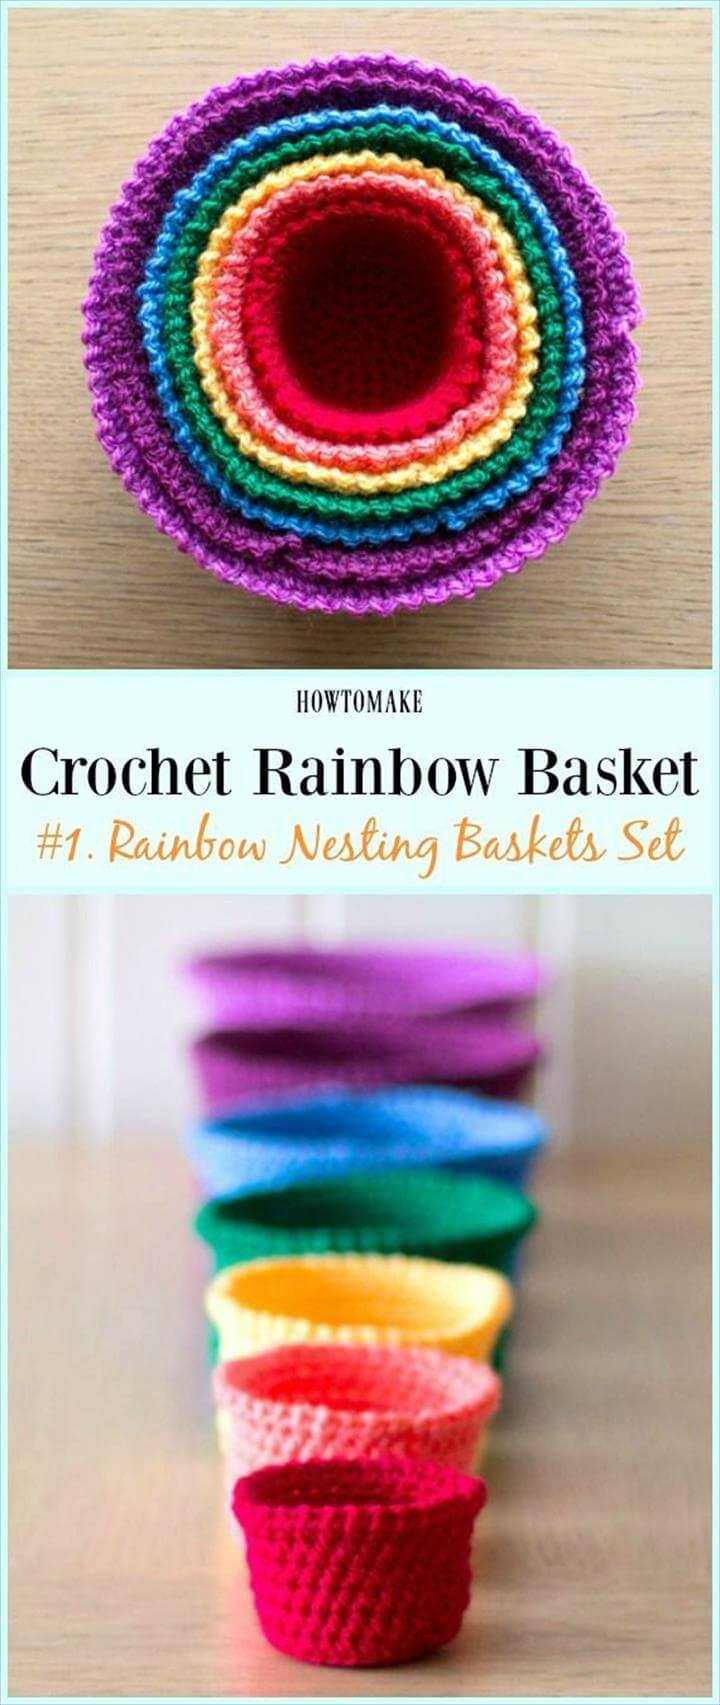 Rainbow Nesting Baskets Set Free Crochet Pattern